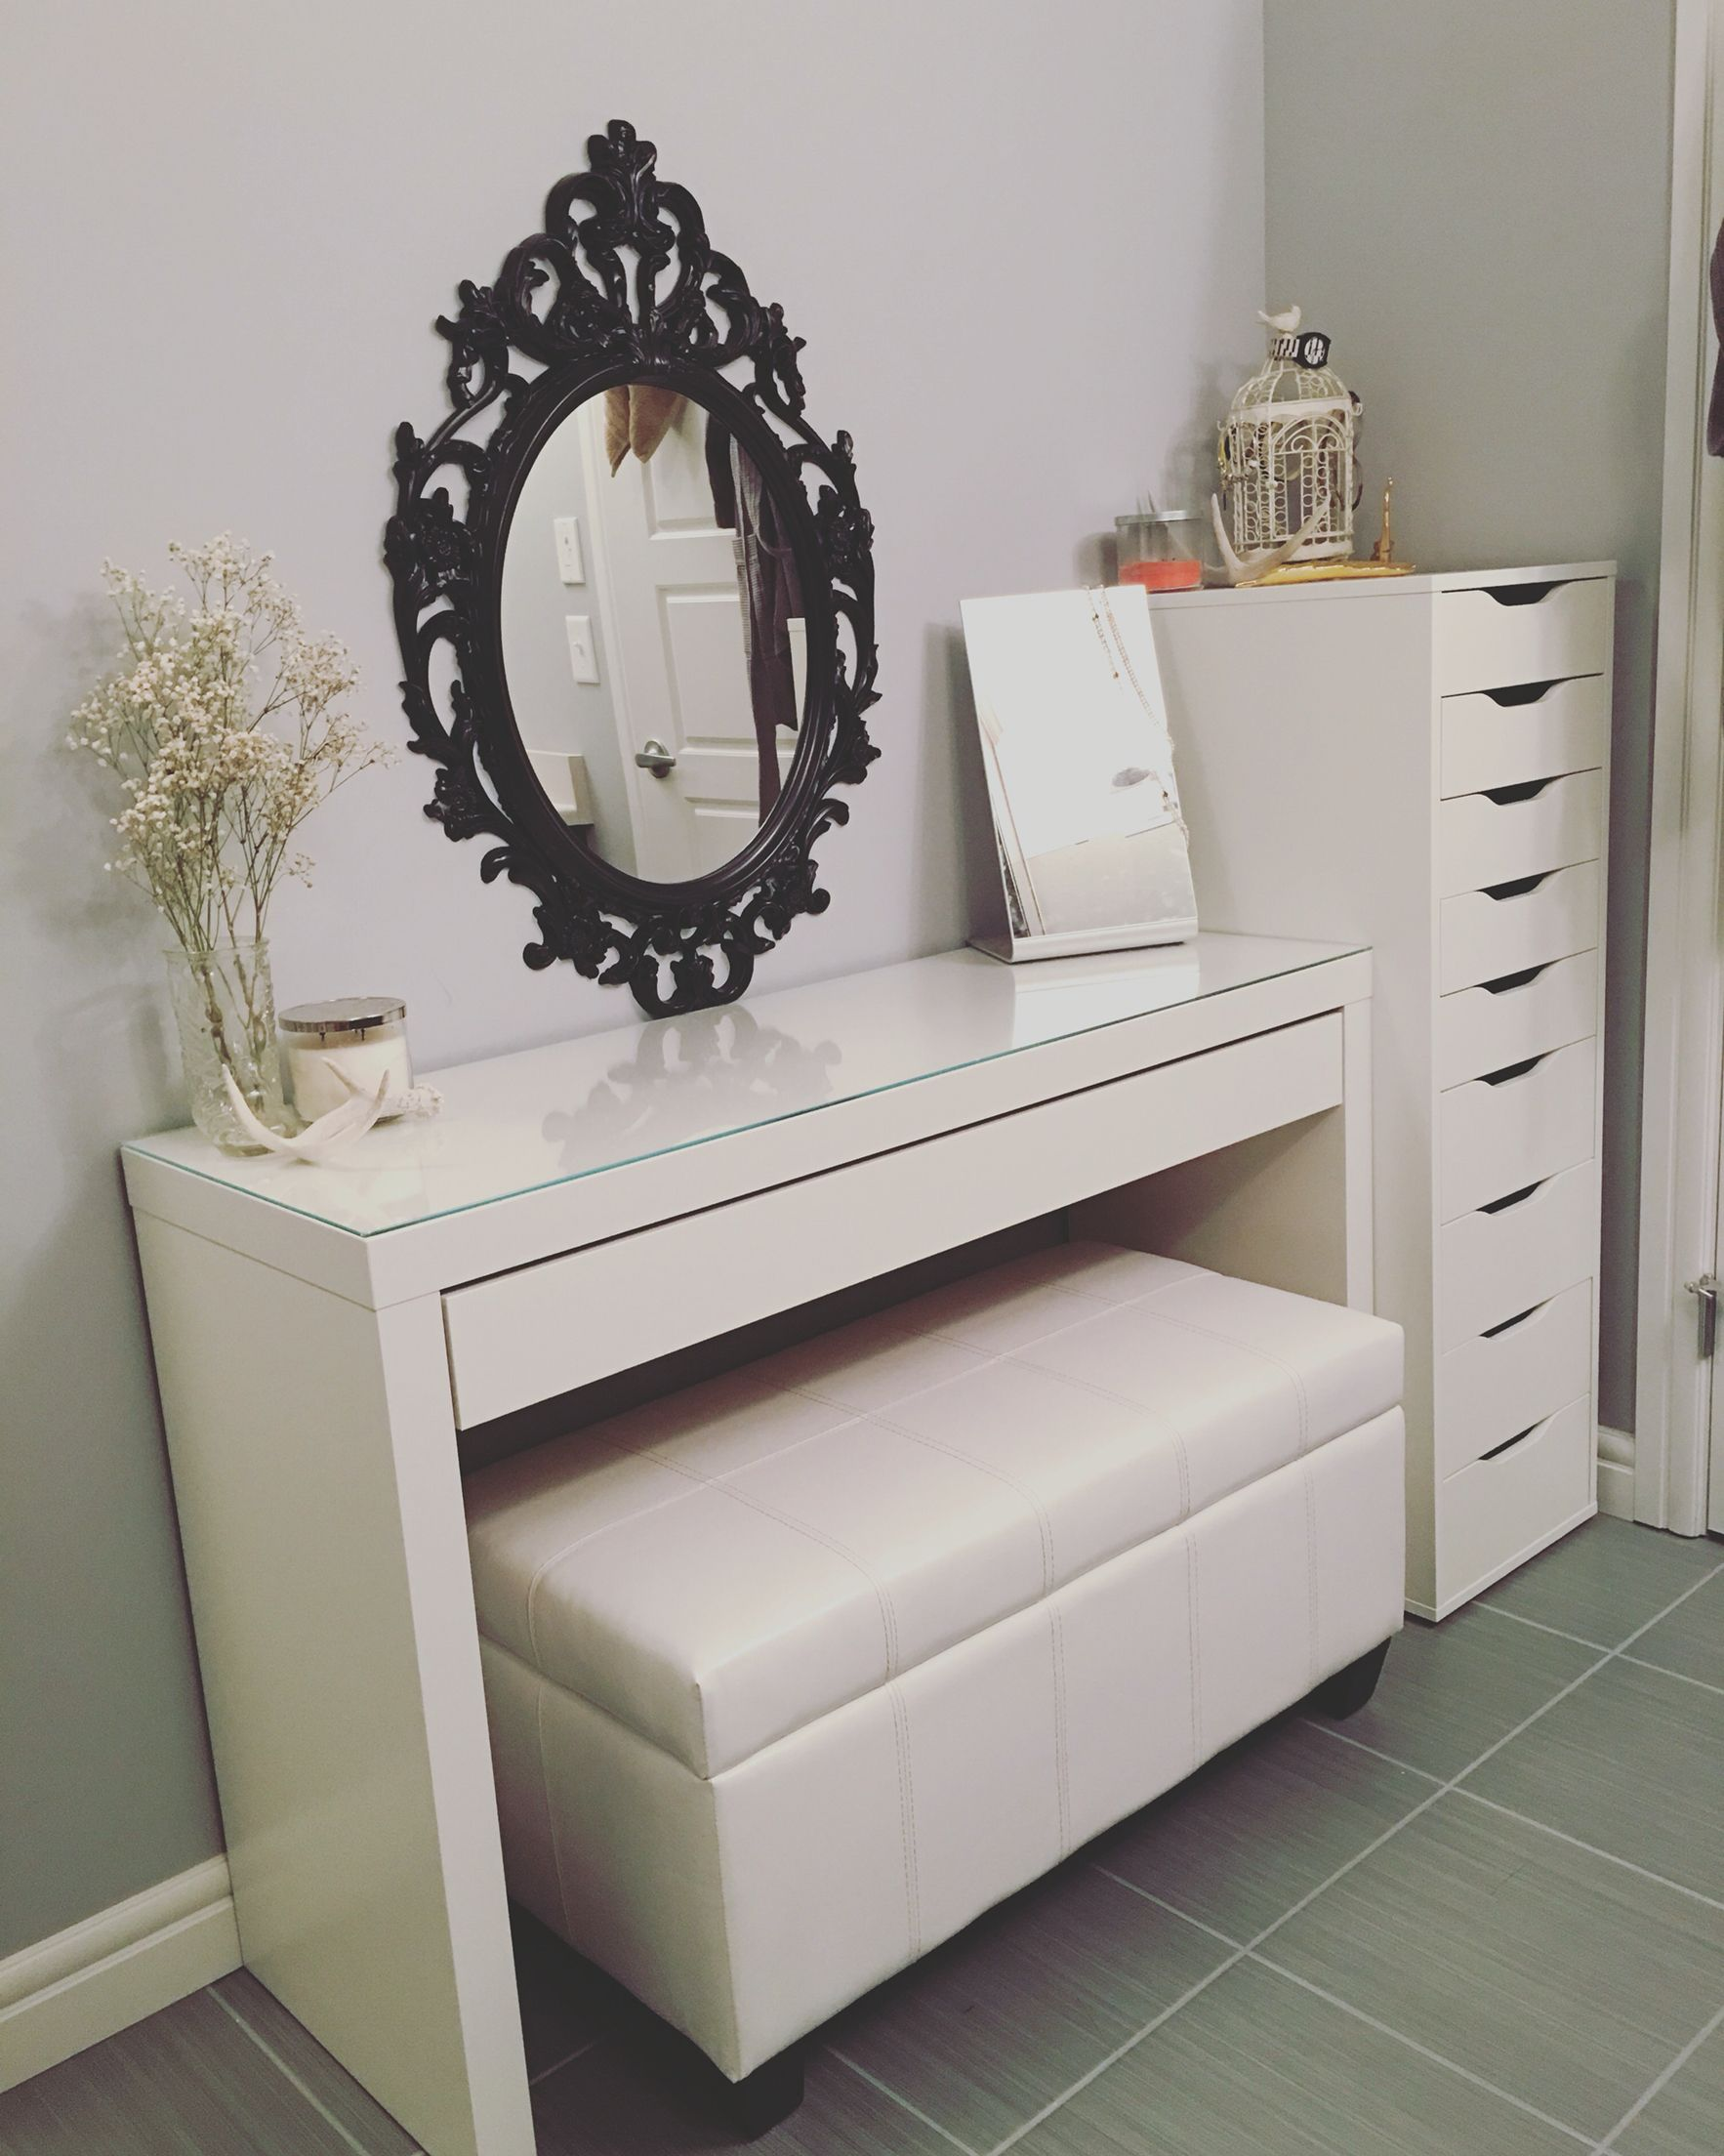 Updated Vanity Malm Desk IKEA Alex Drawers IKEA Bella - Beautiful diy ikea mirrors hacks to try